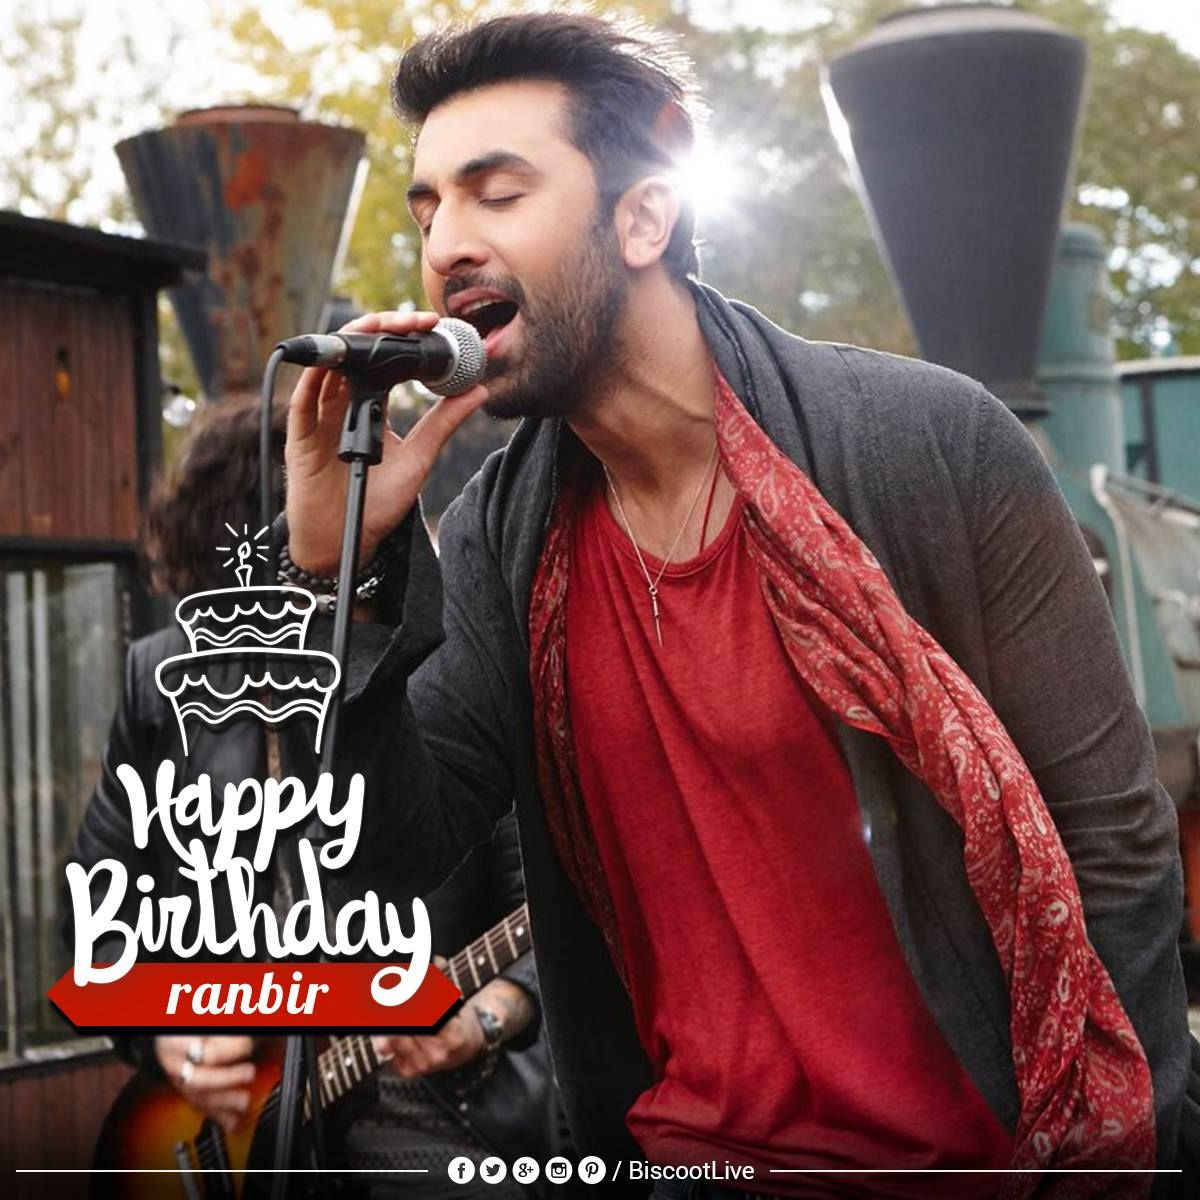 Here We Are Wishing A Very Happy Birthday To The Handsome